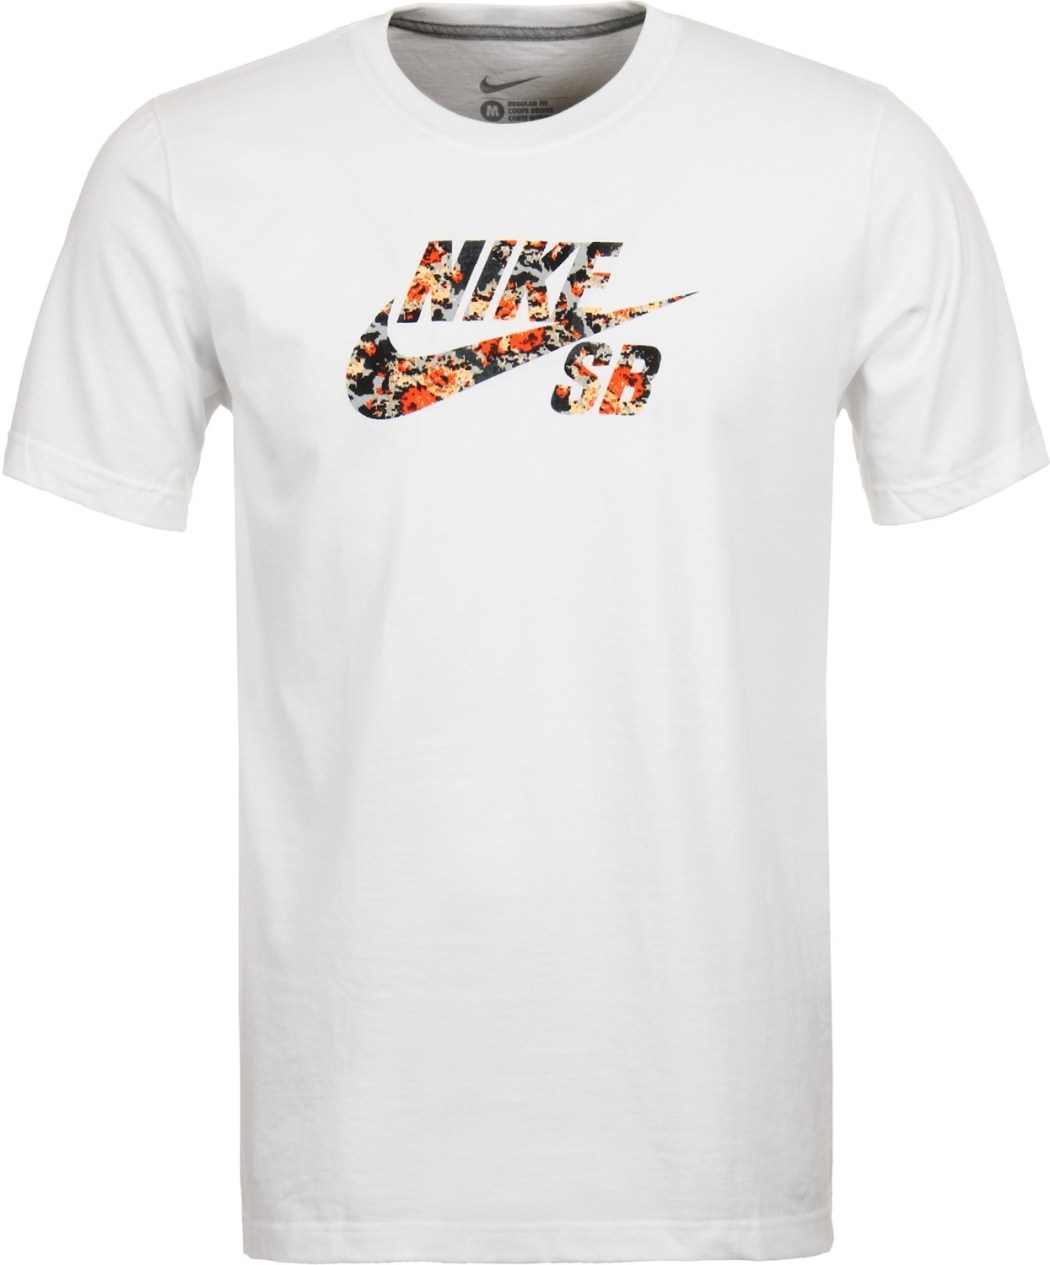 nike-sb-sb-icon-digi-camo-dri-fit-t-shirt-white